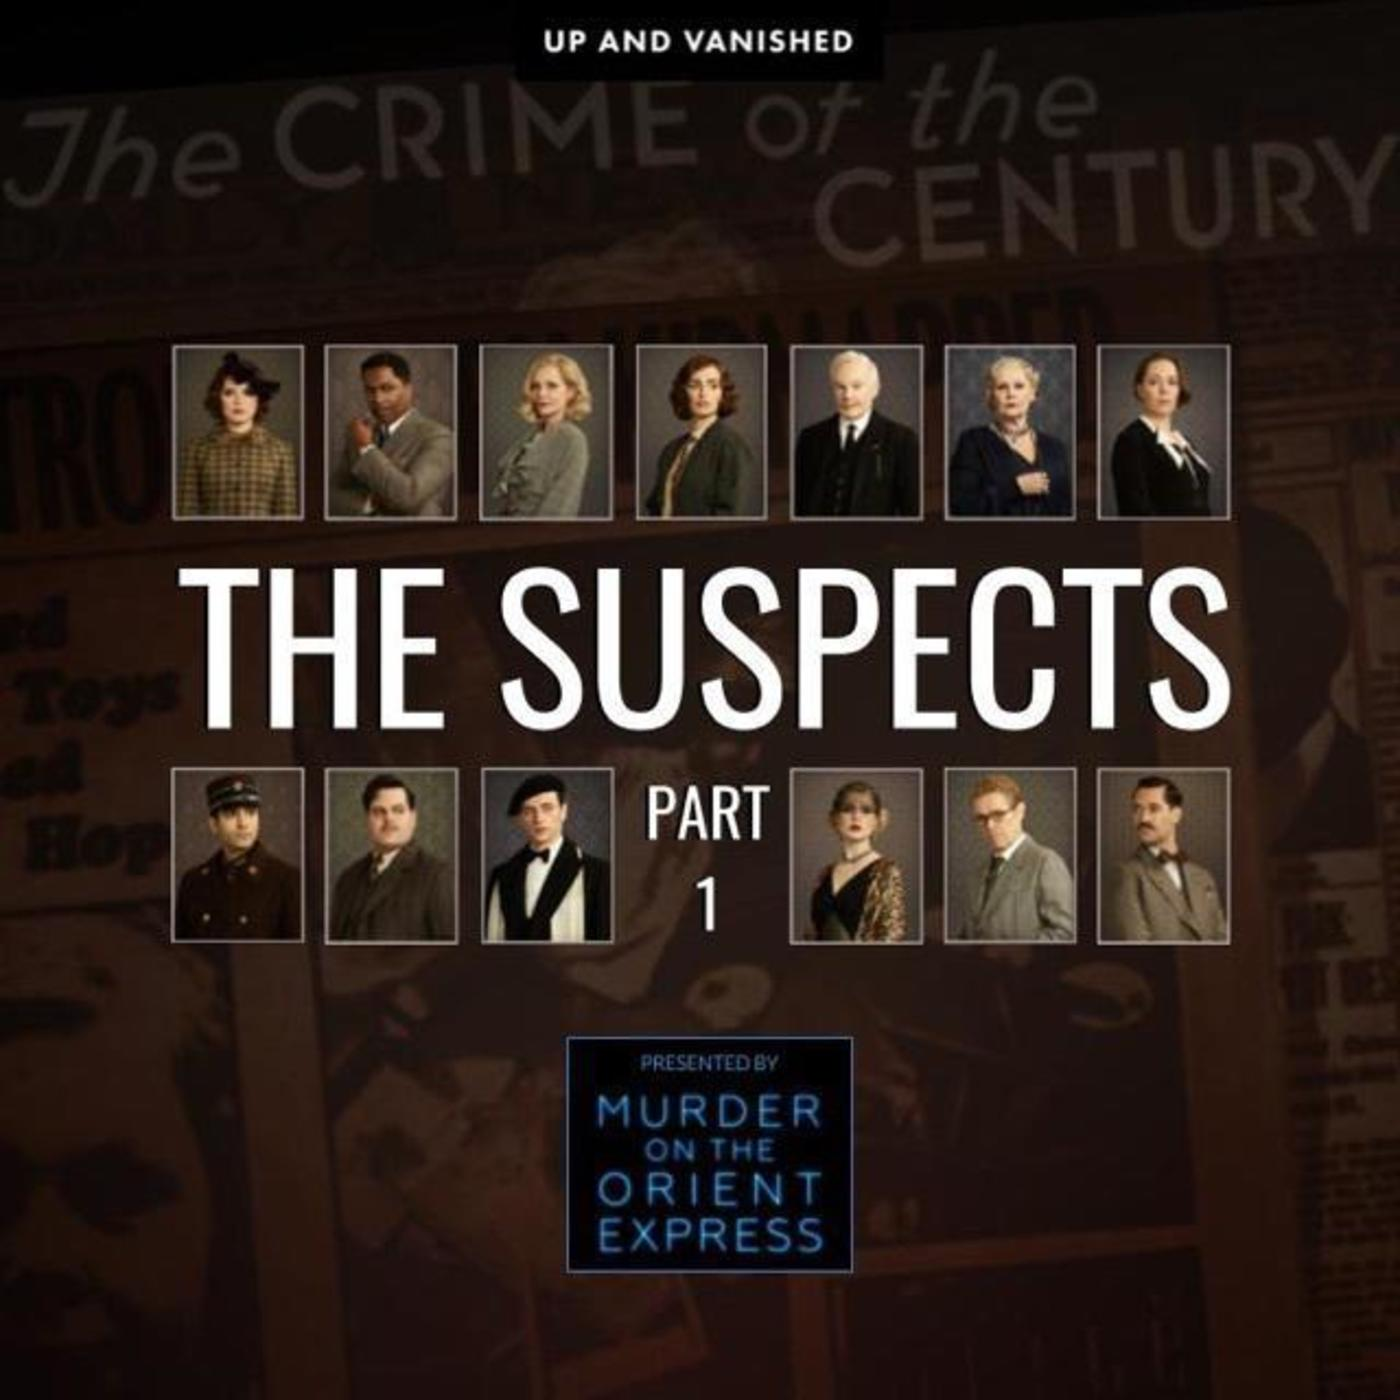 S E : The Suspects : Part 1 - Presented by Up and Vanished and Murder On the Orient Express